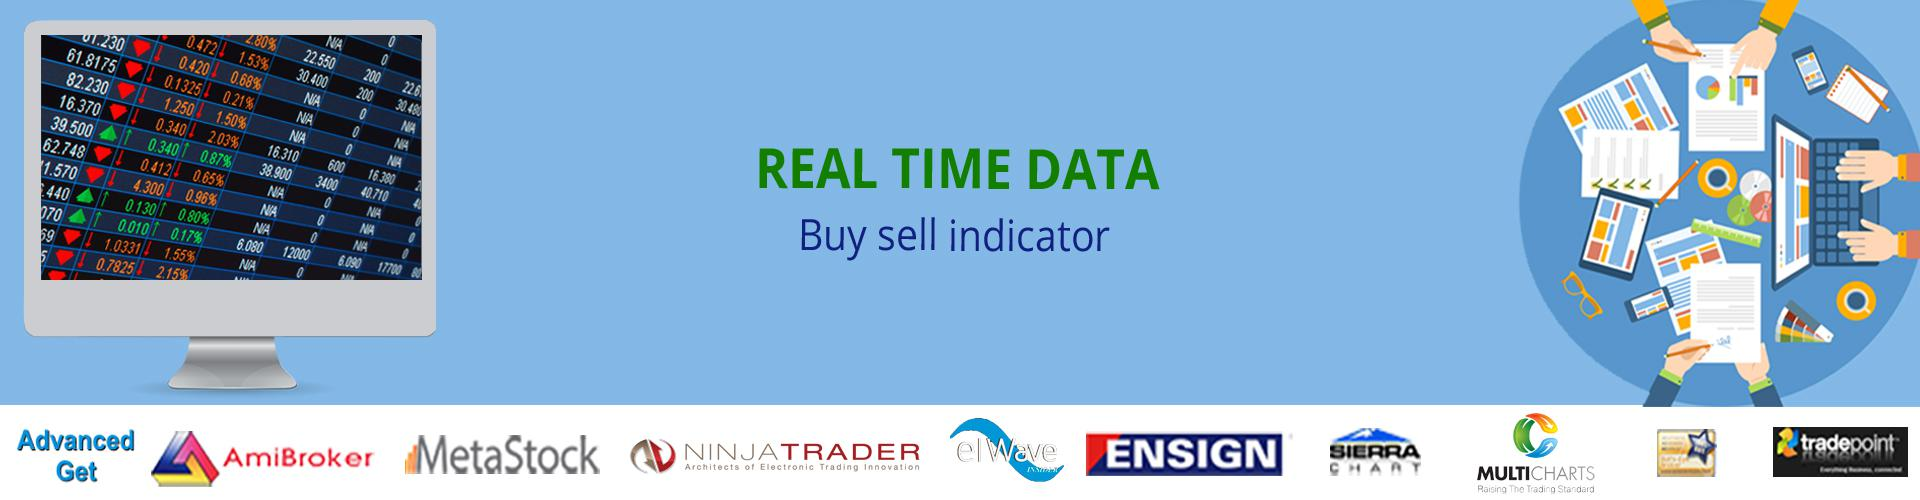 amiBroker real time data feed- advancedget ninjatrader